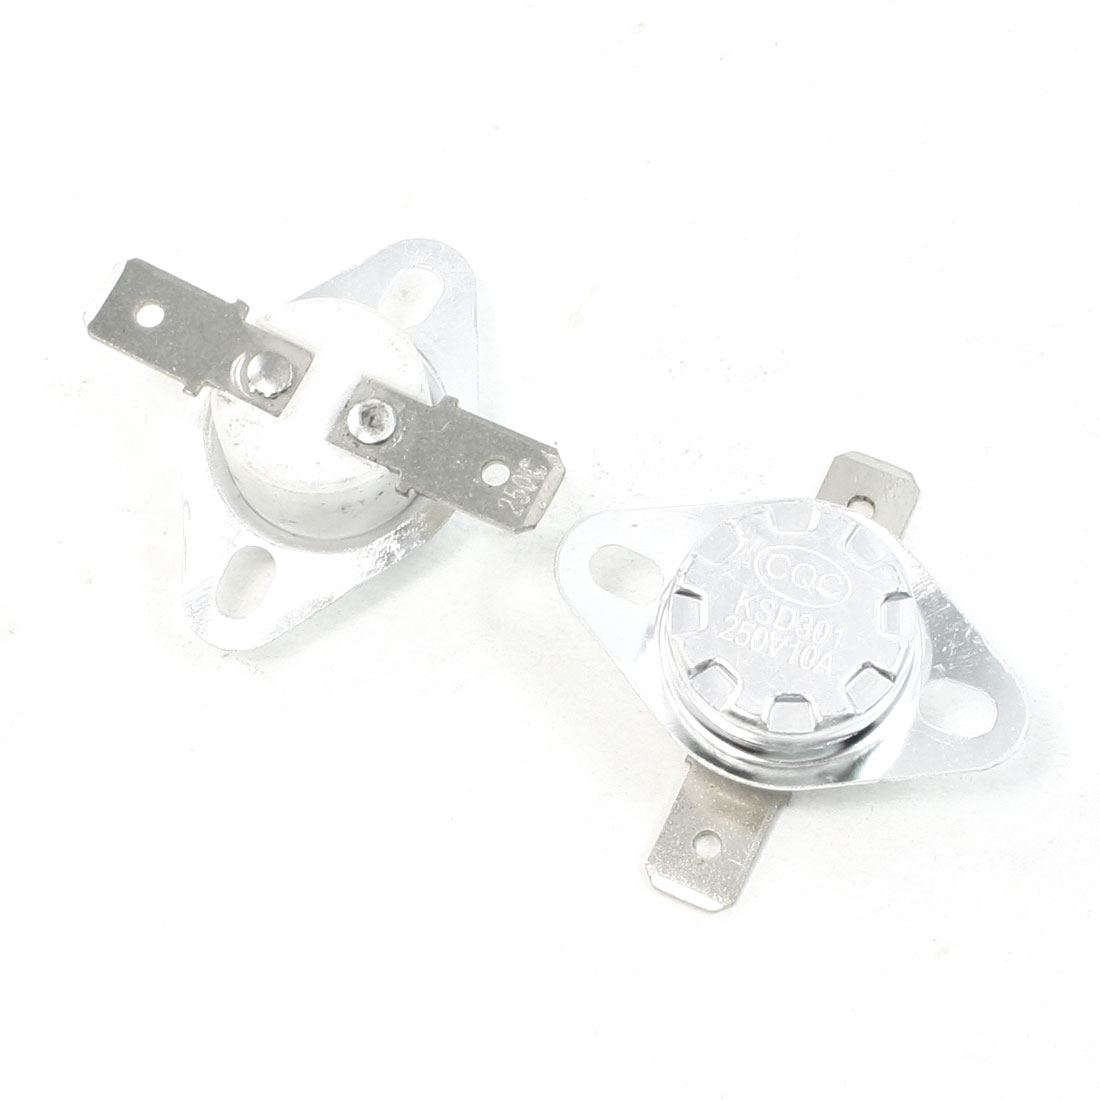 2 Pcs 250C Celsius NC 2 Flat Pin KSD301 Model Ceramic Thermostat 10A AC 250V